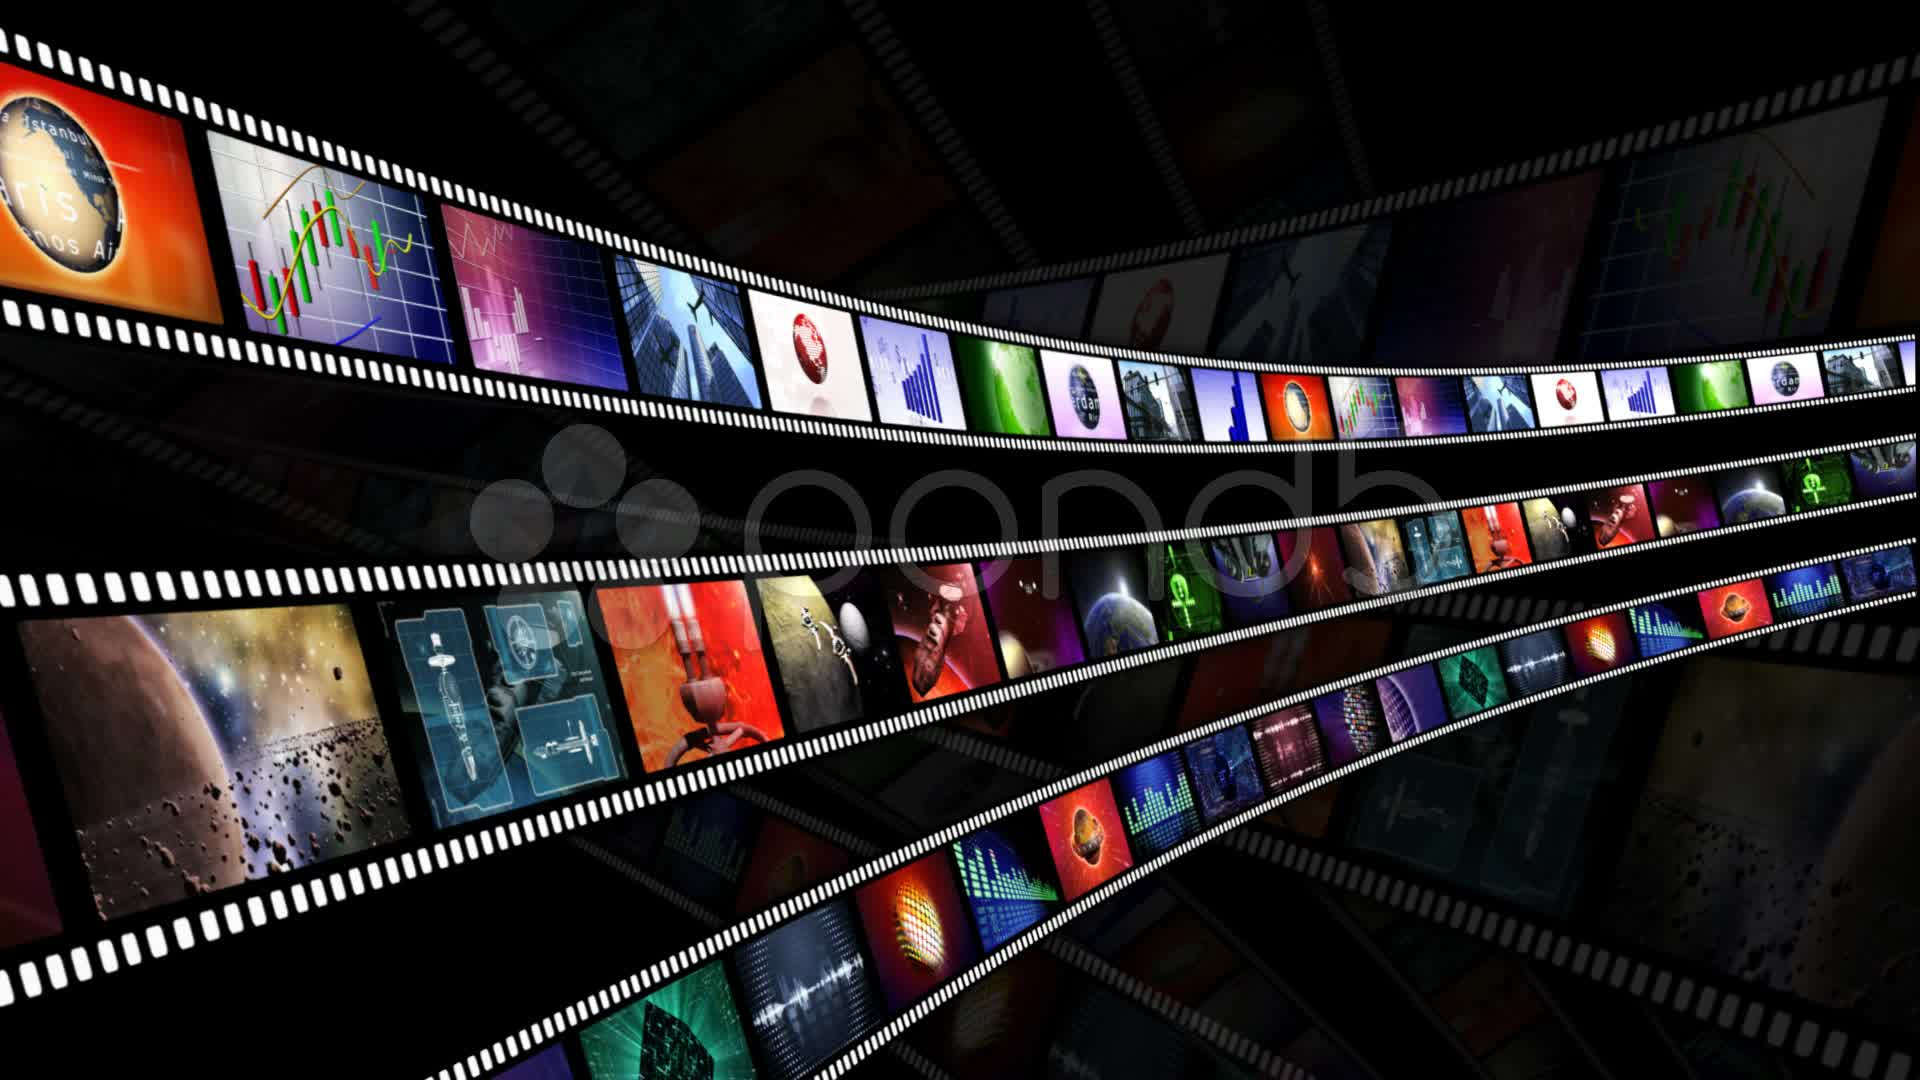 Movies Wallpaper  WallpaperSafari